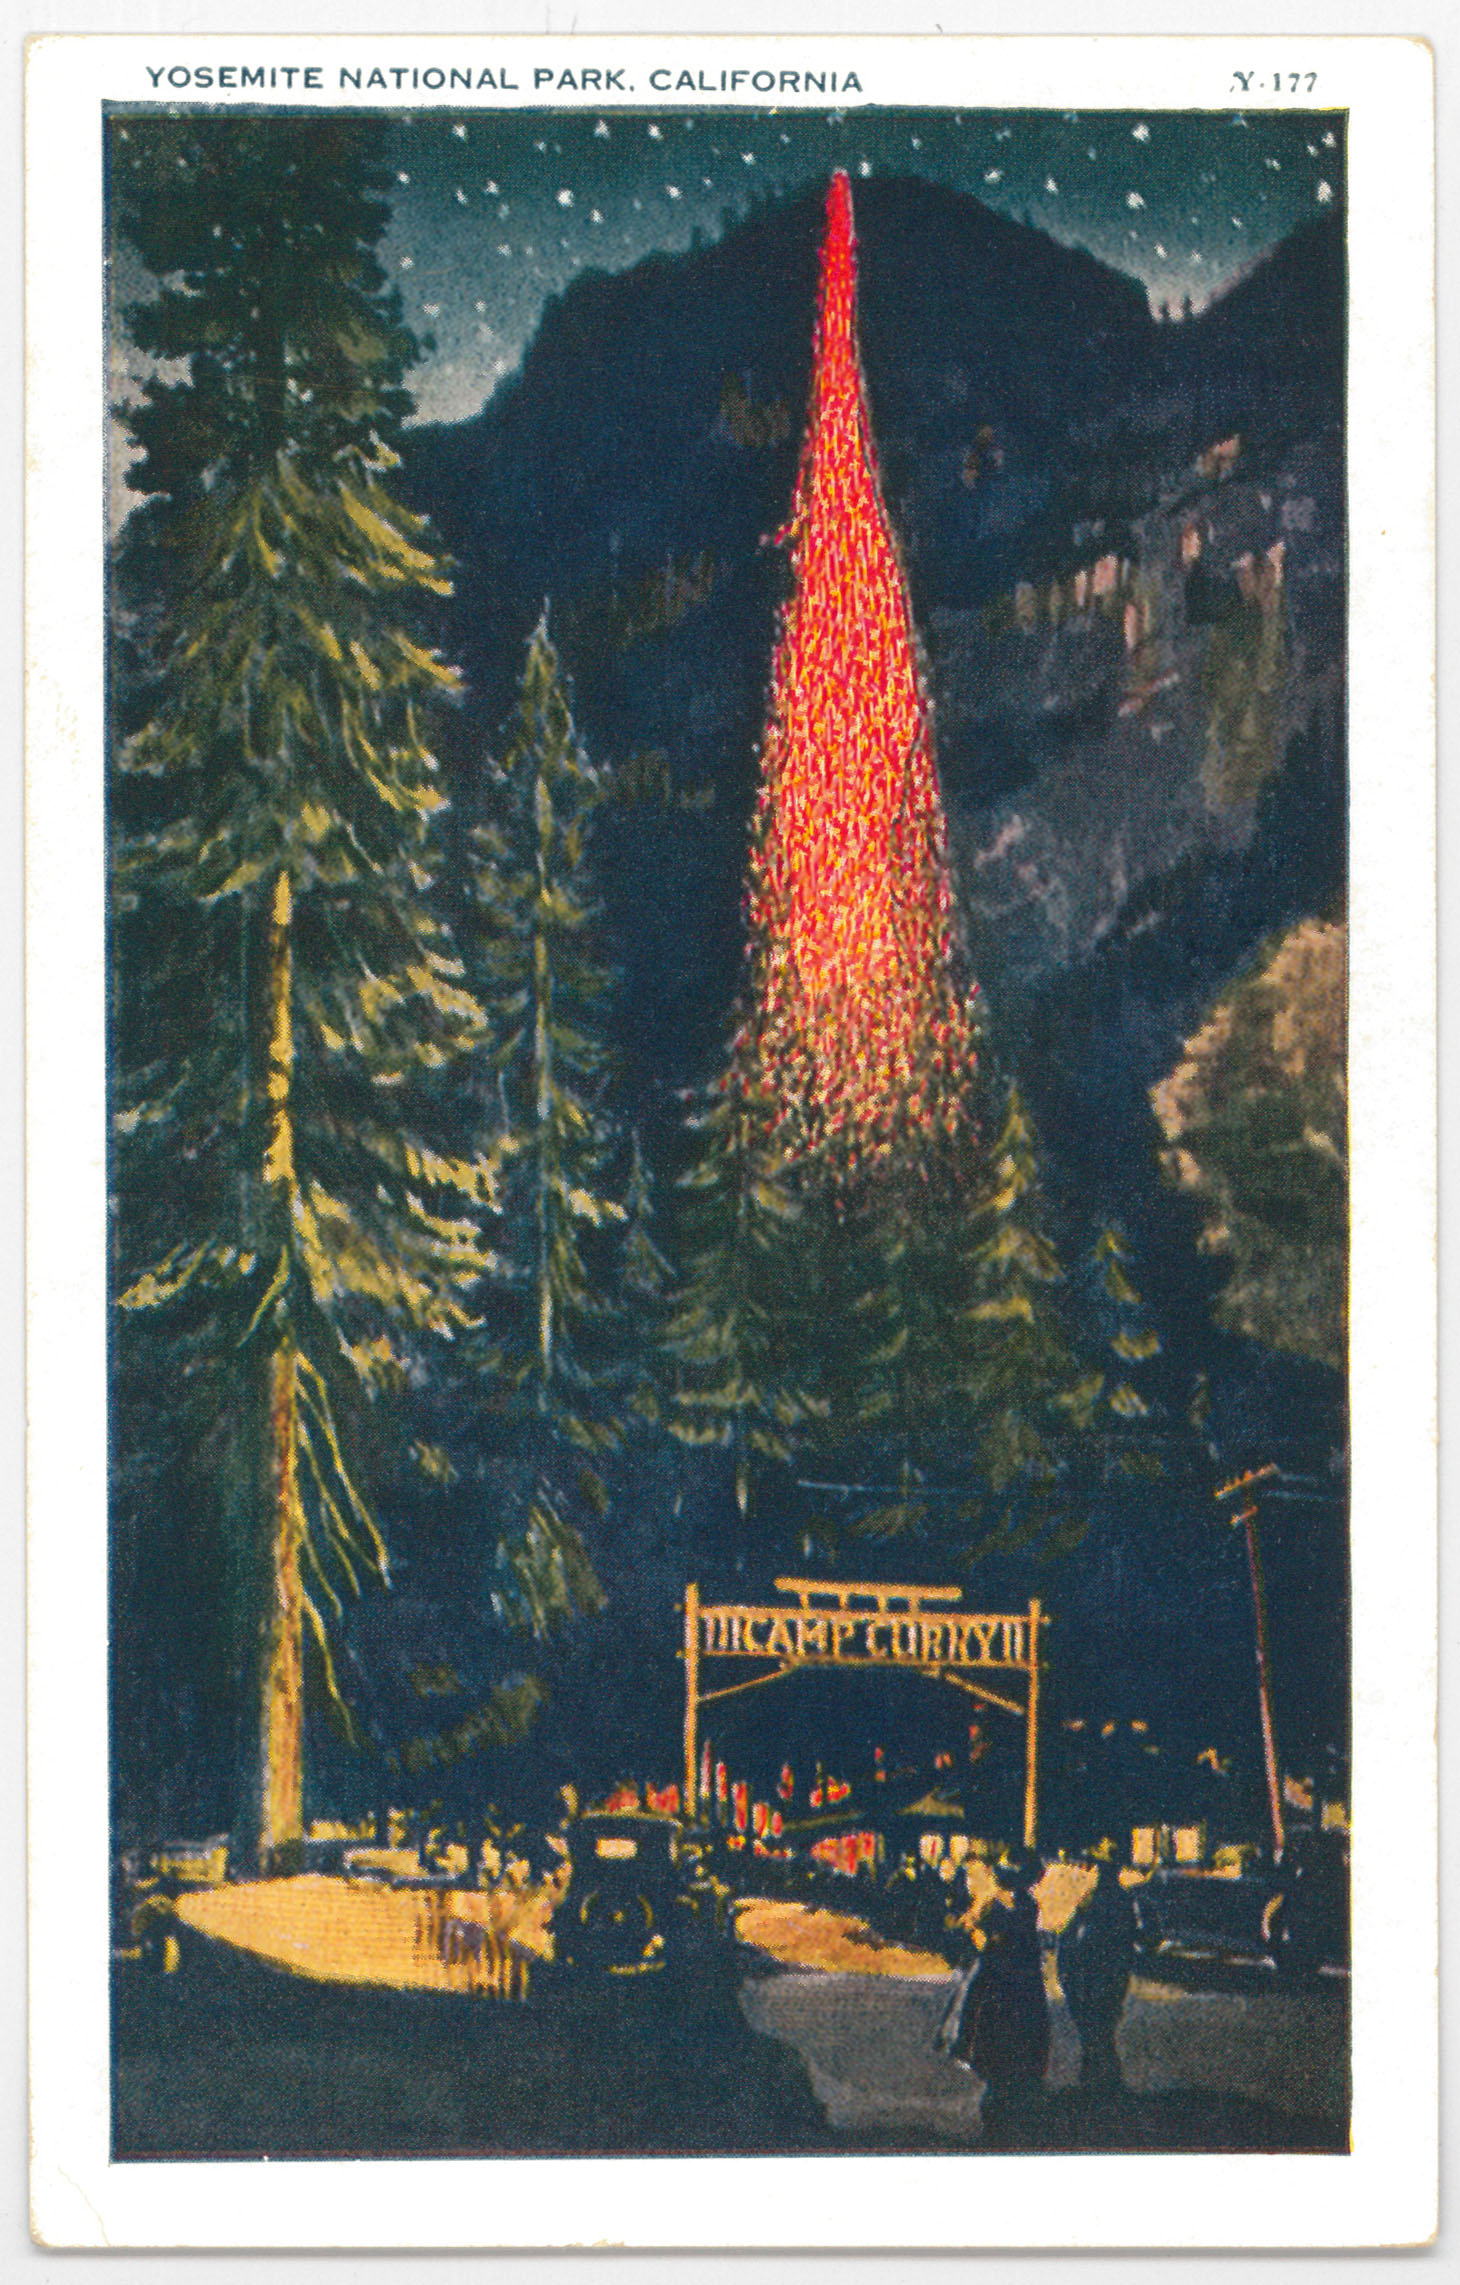 Circa 1930 postcard of Camp Curry and the Firefall